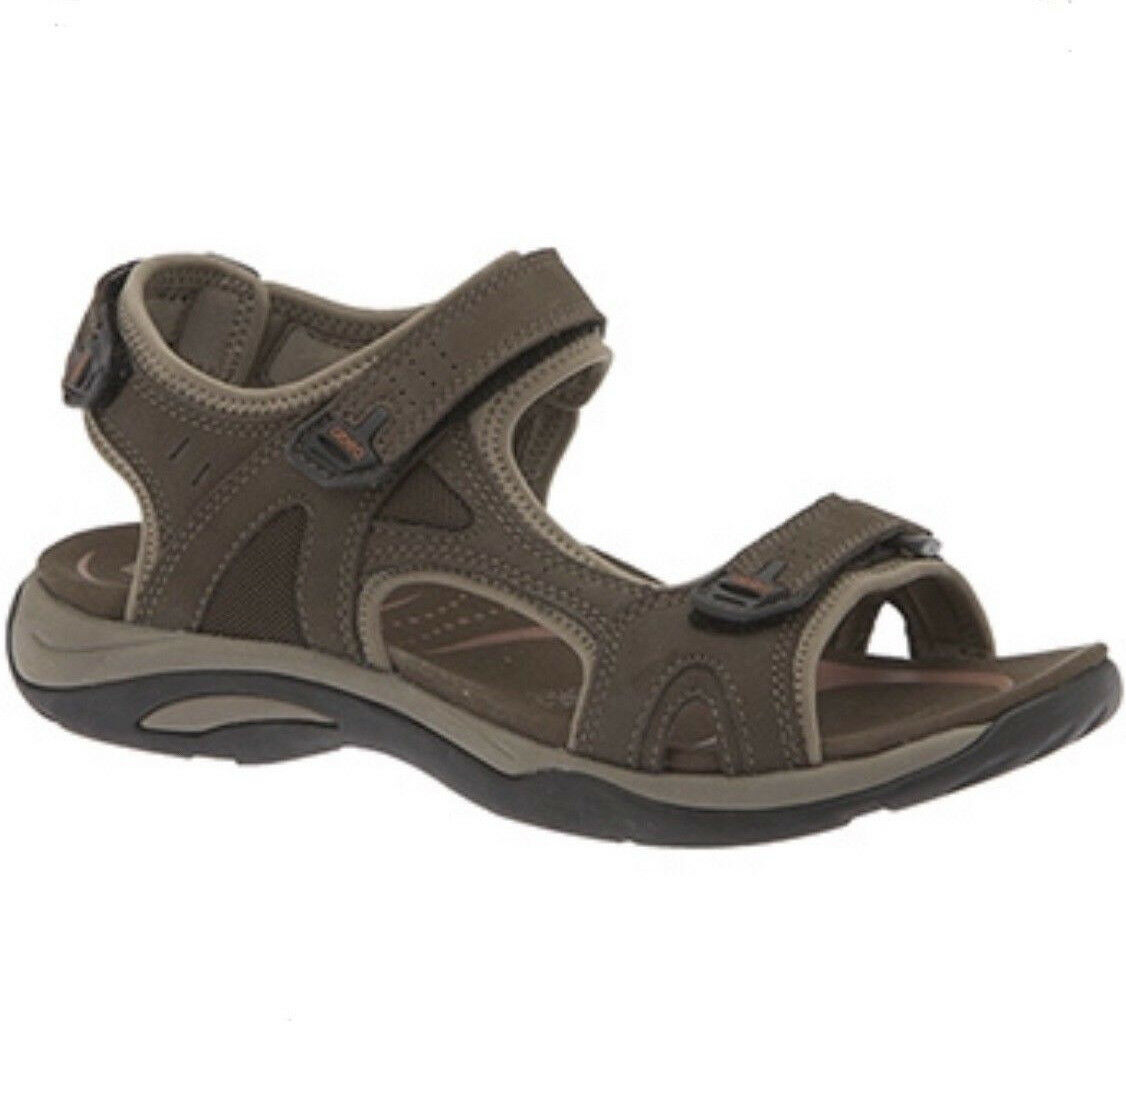 Abeo Womens Sport Sandals Huntington Neutral Strappy Brown Leather shoes Size 9